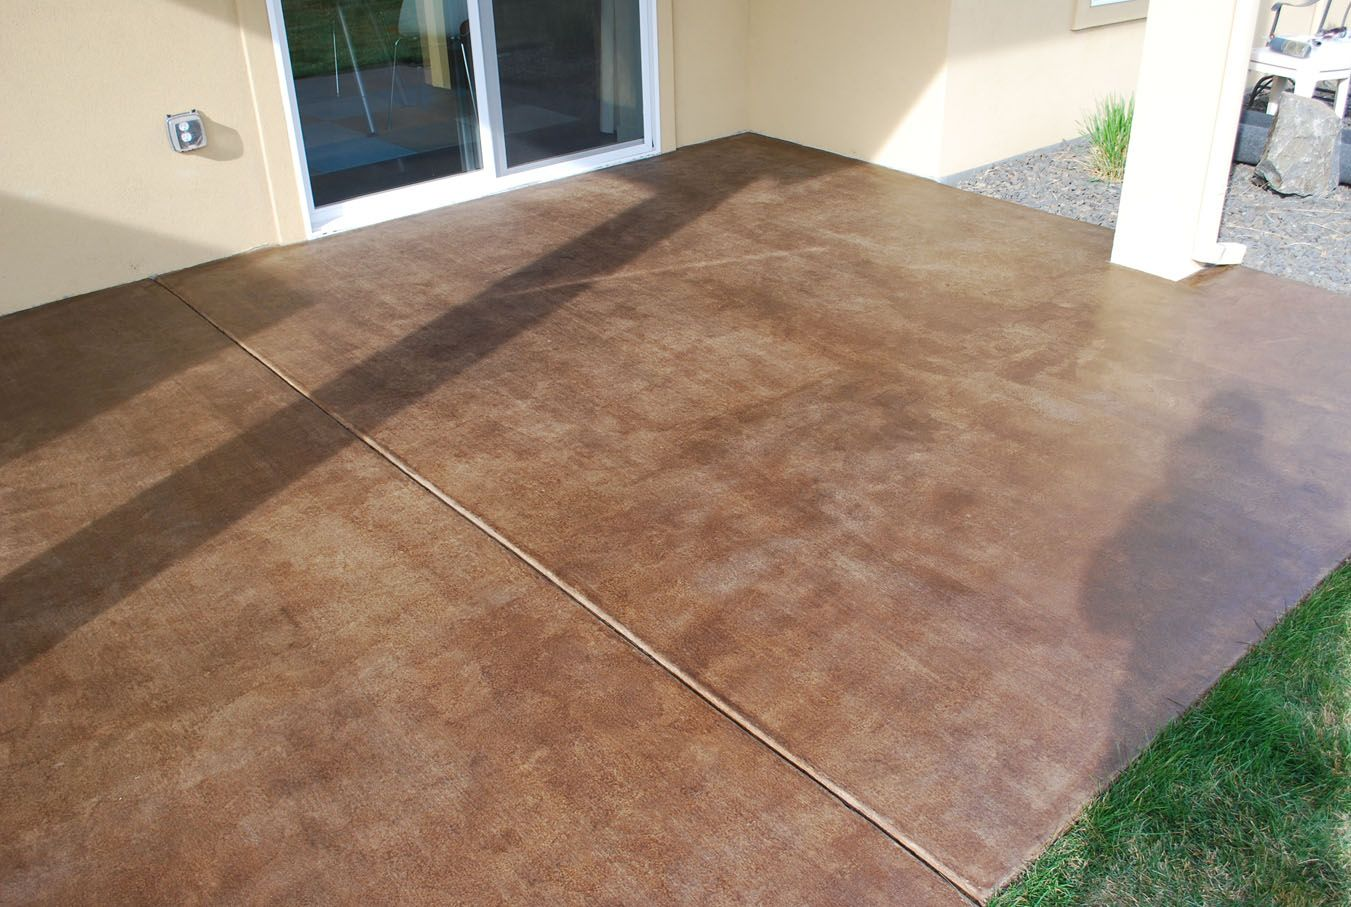 How To Stain A Concrete Patio Easy Diy Project The Garden Glove Concrete Stain Patio Diy Concrete Patio Patio Flooring